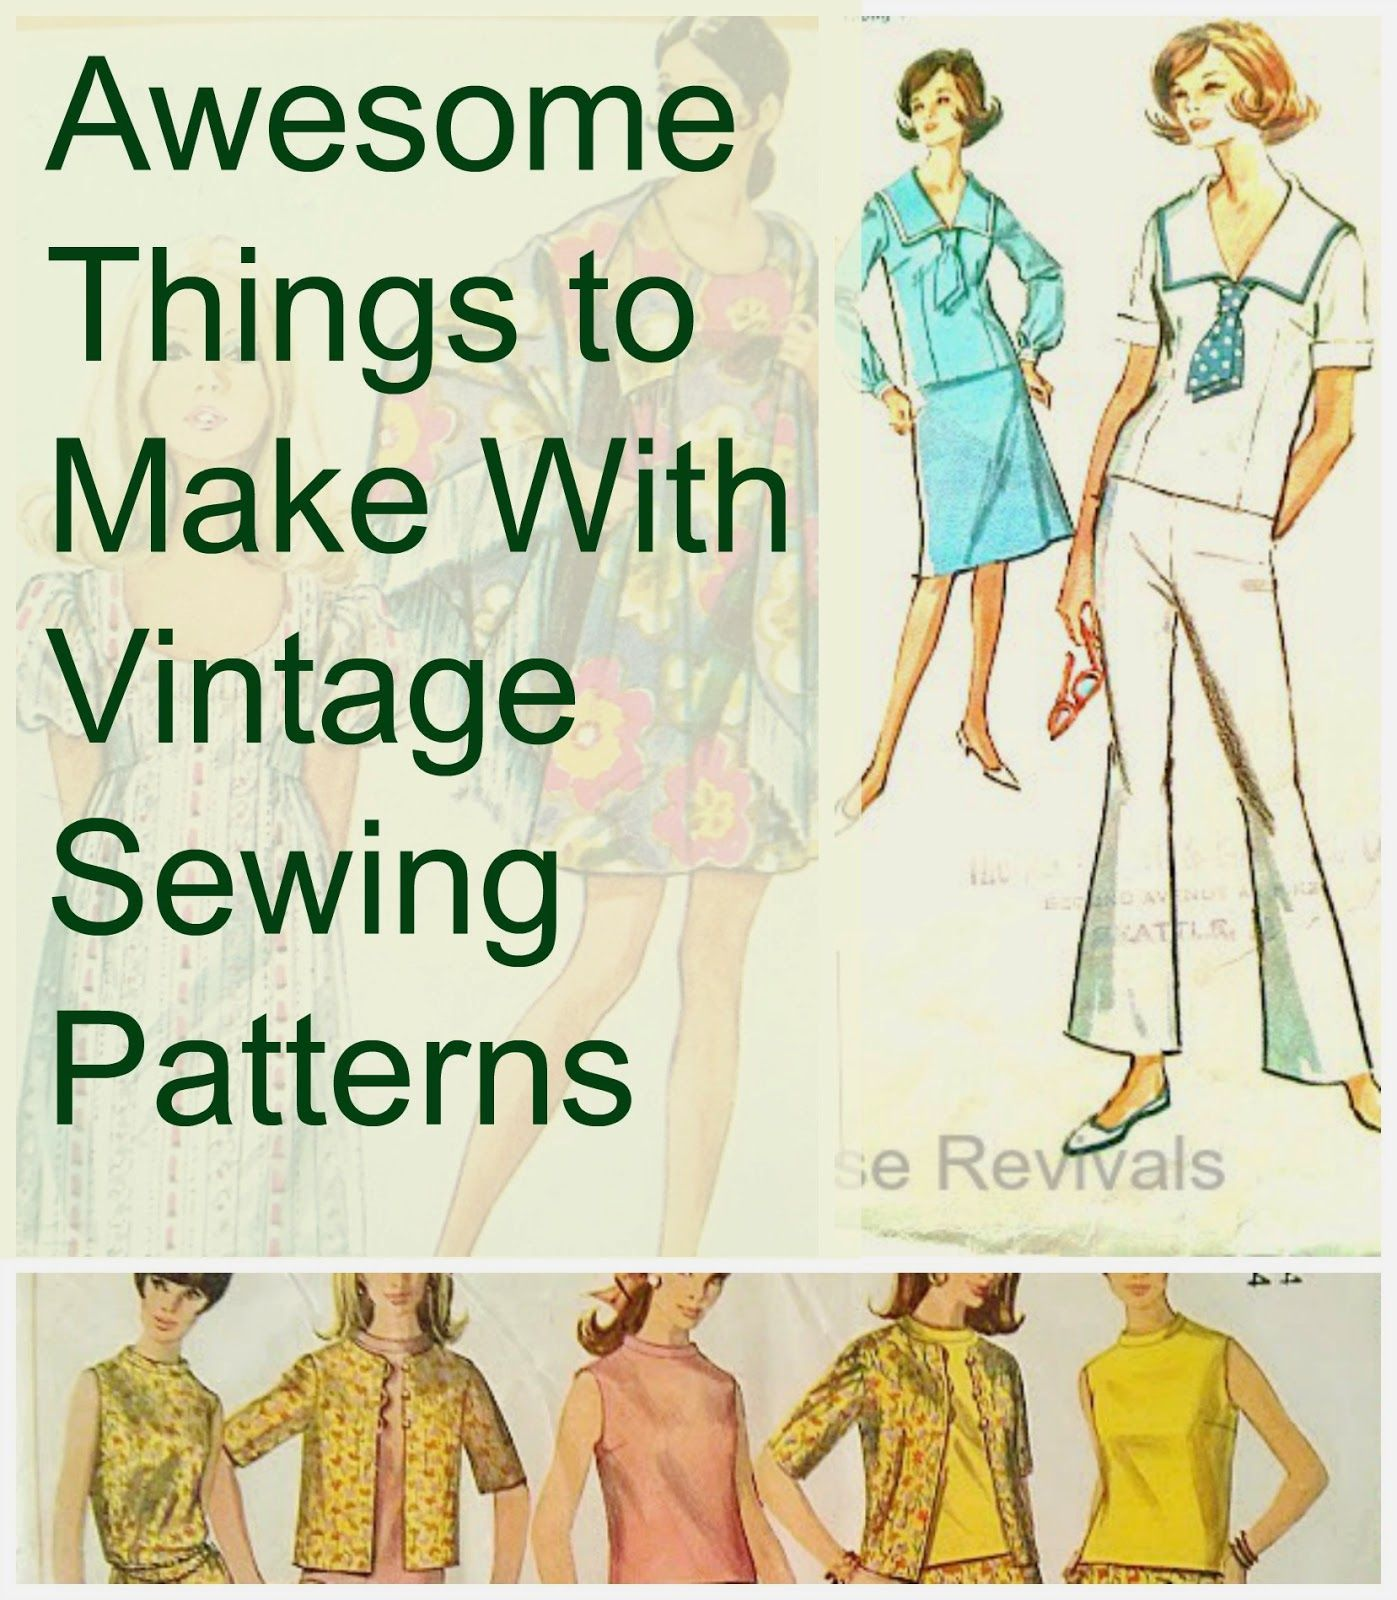 House Revivals: Cool Things to Make With Vintage Sewing Patterns ...